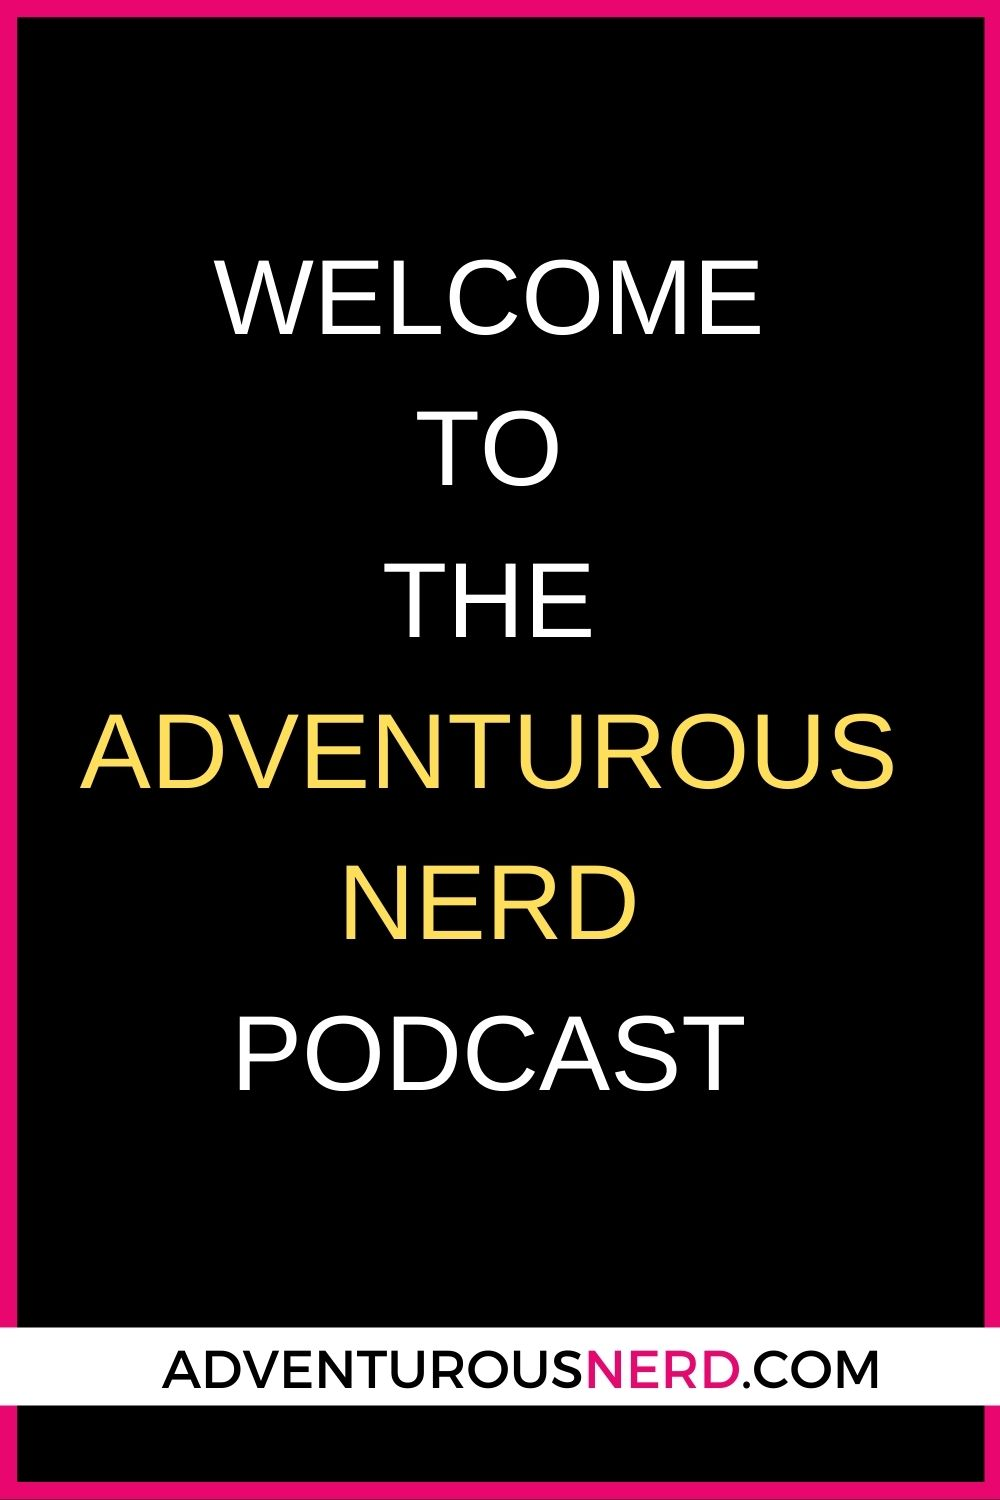 image of text box with text welcome to the adventurous nerd podcast